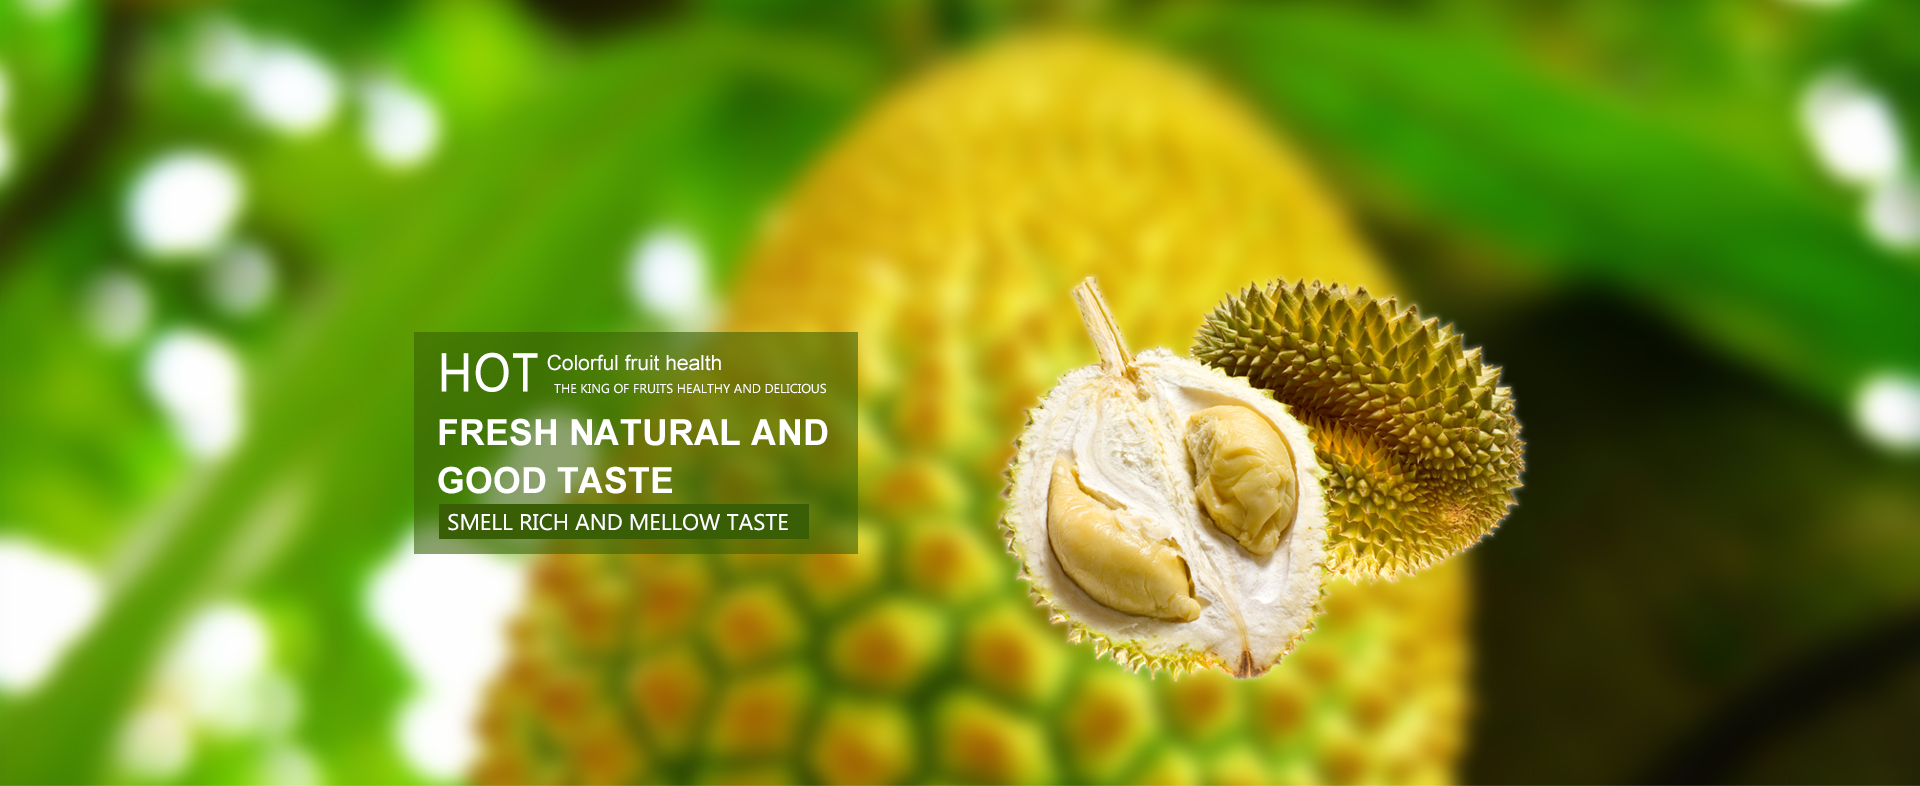 The import of Durian